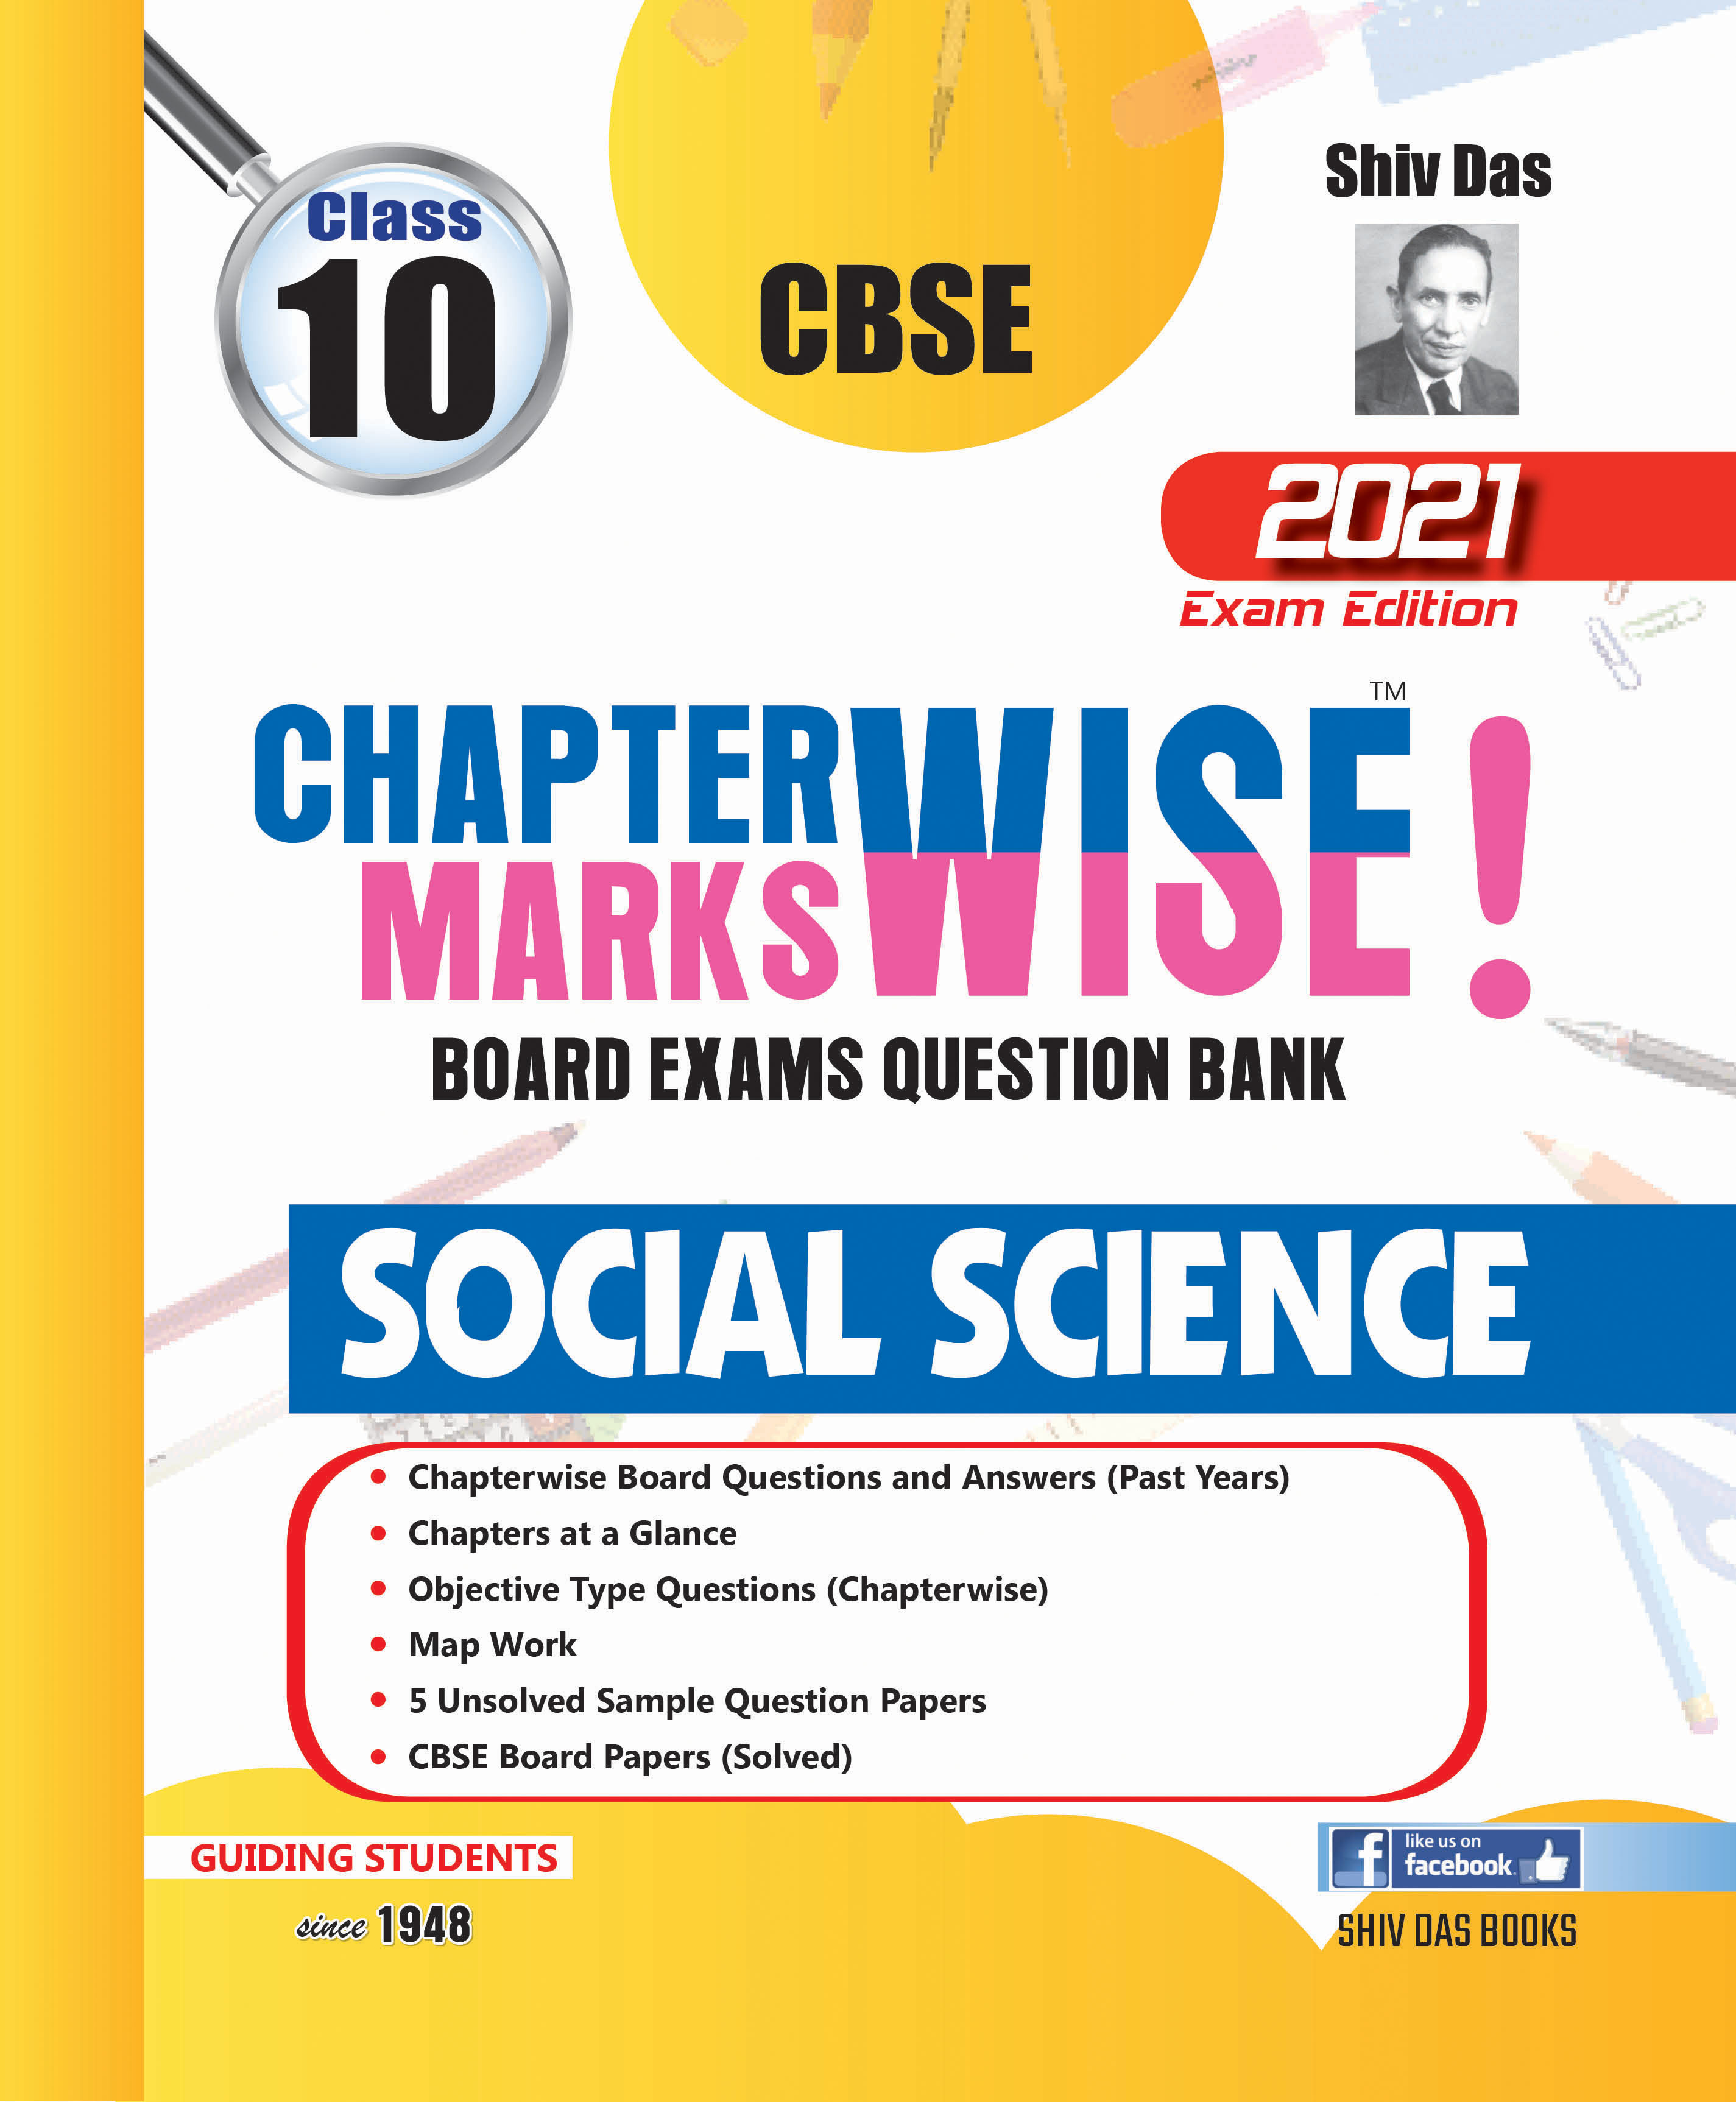 CBSE Chapterwise and Markswise Board Exam Question Bank By SHIVDAS for Class 10 Social Science(2021 Board Exam Edition)